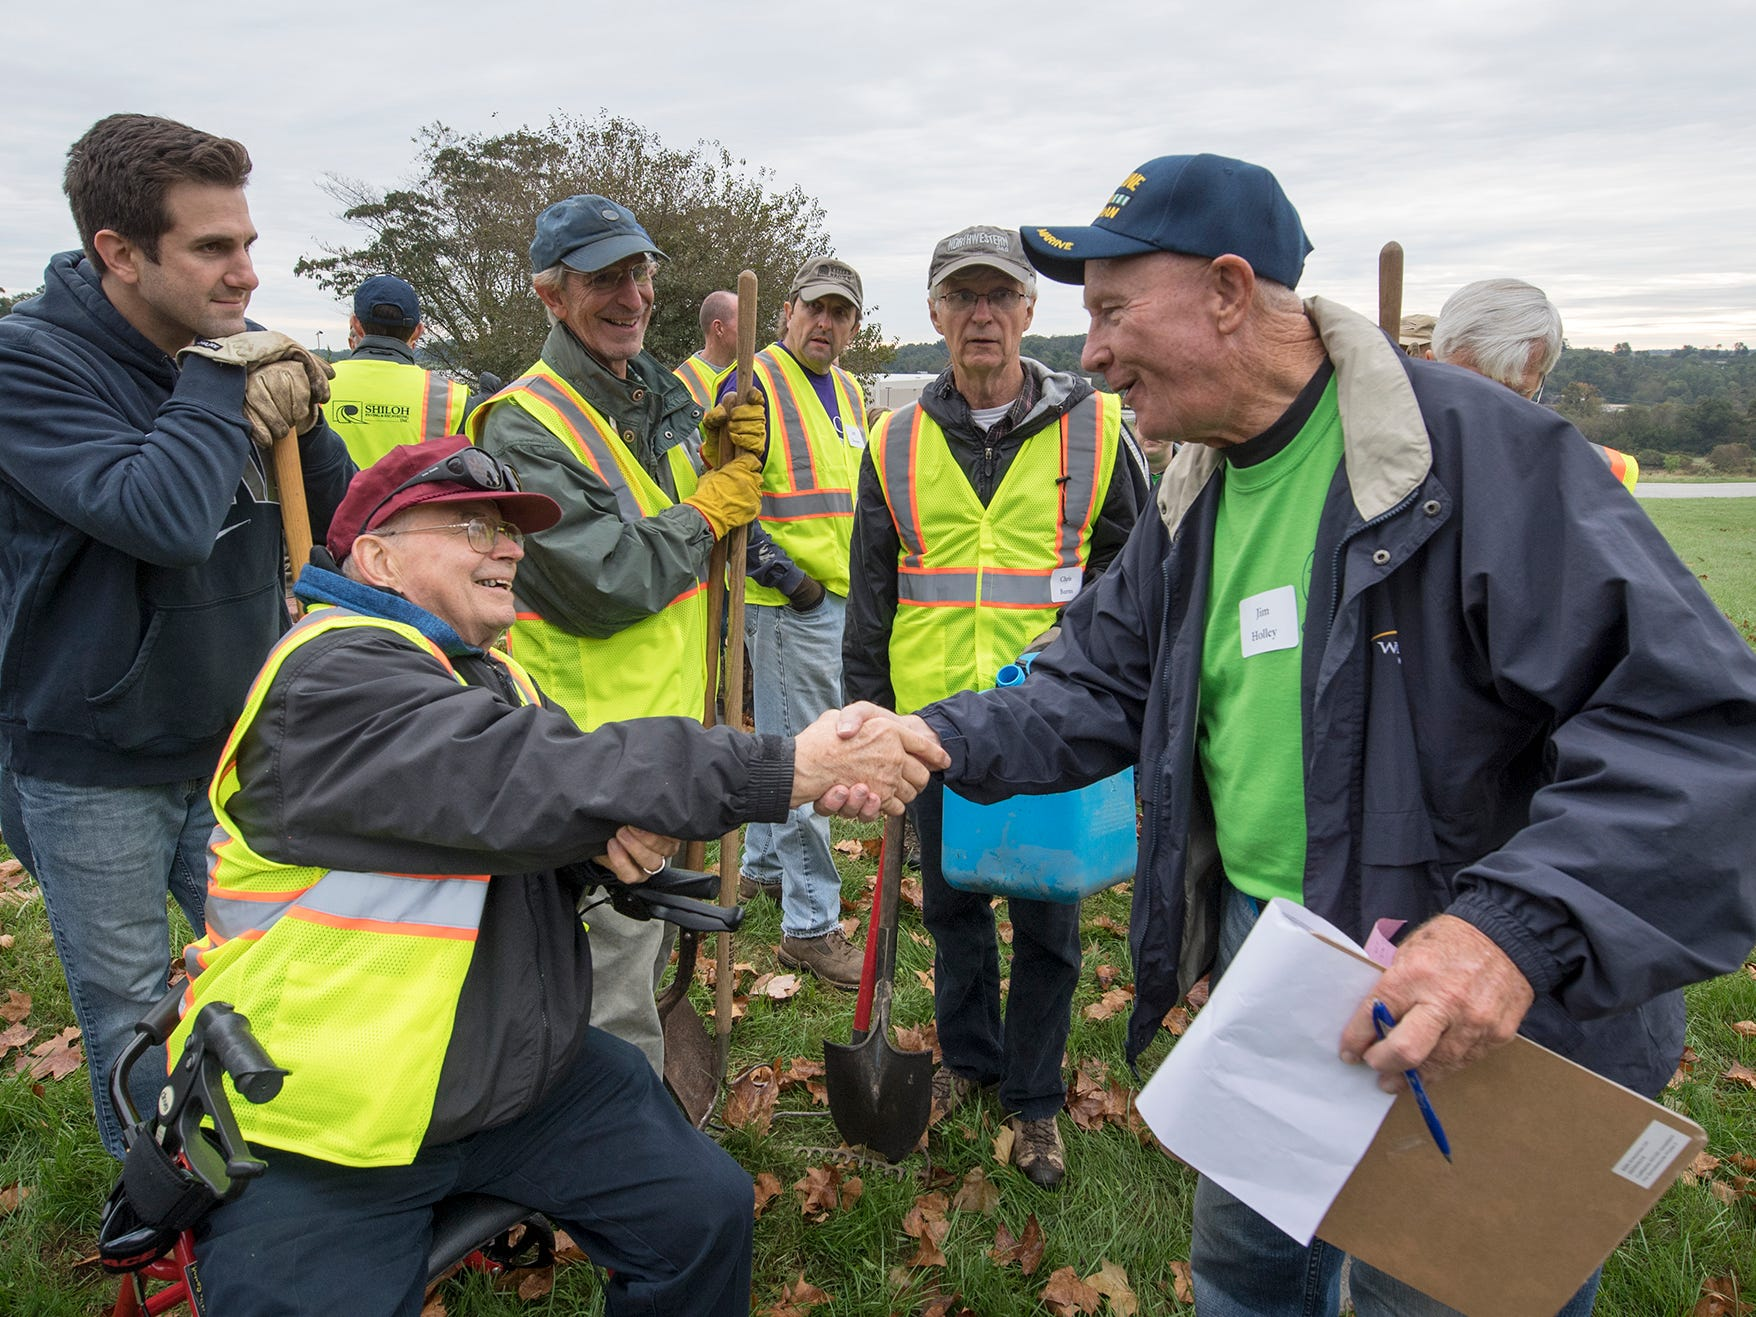 Paul Duryea, left, shakes hands with volunteer Jim Holley after the tree planting demonstation.